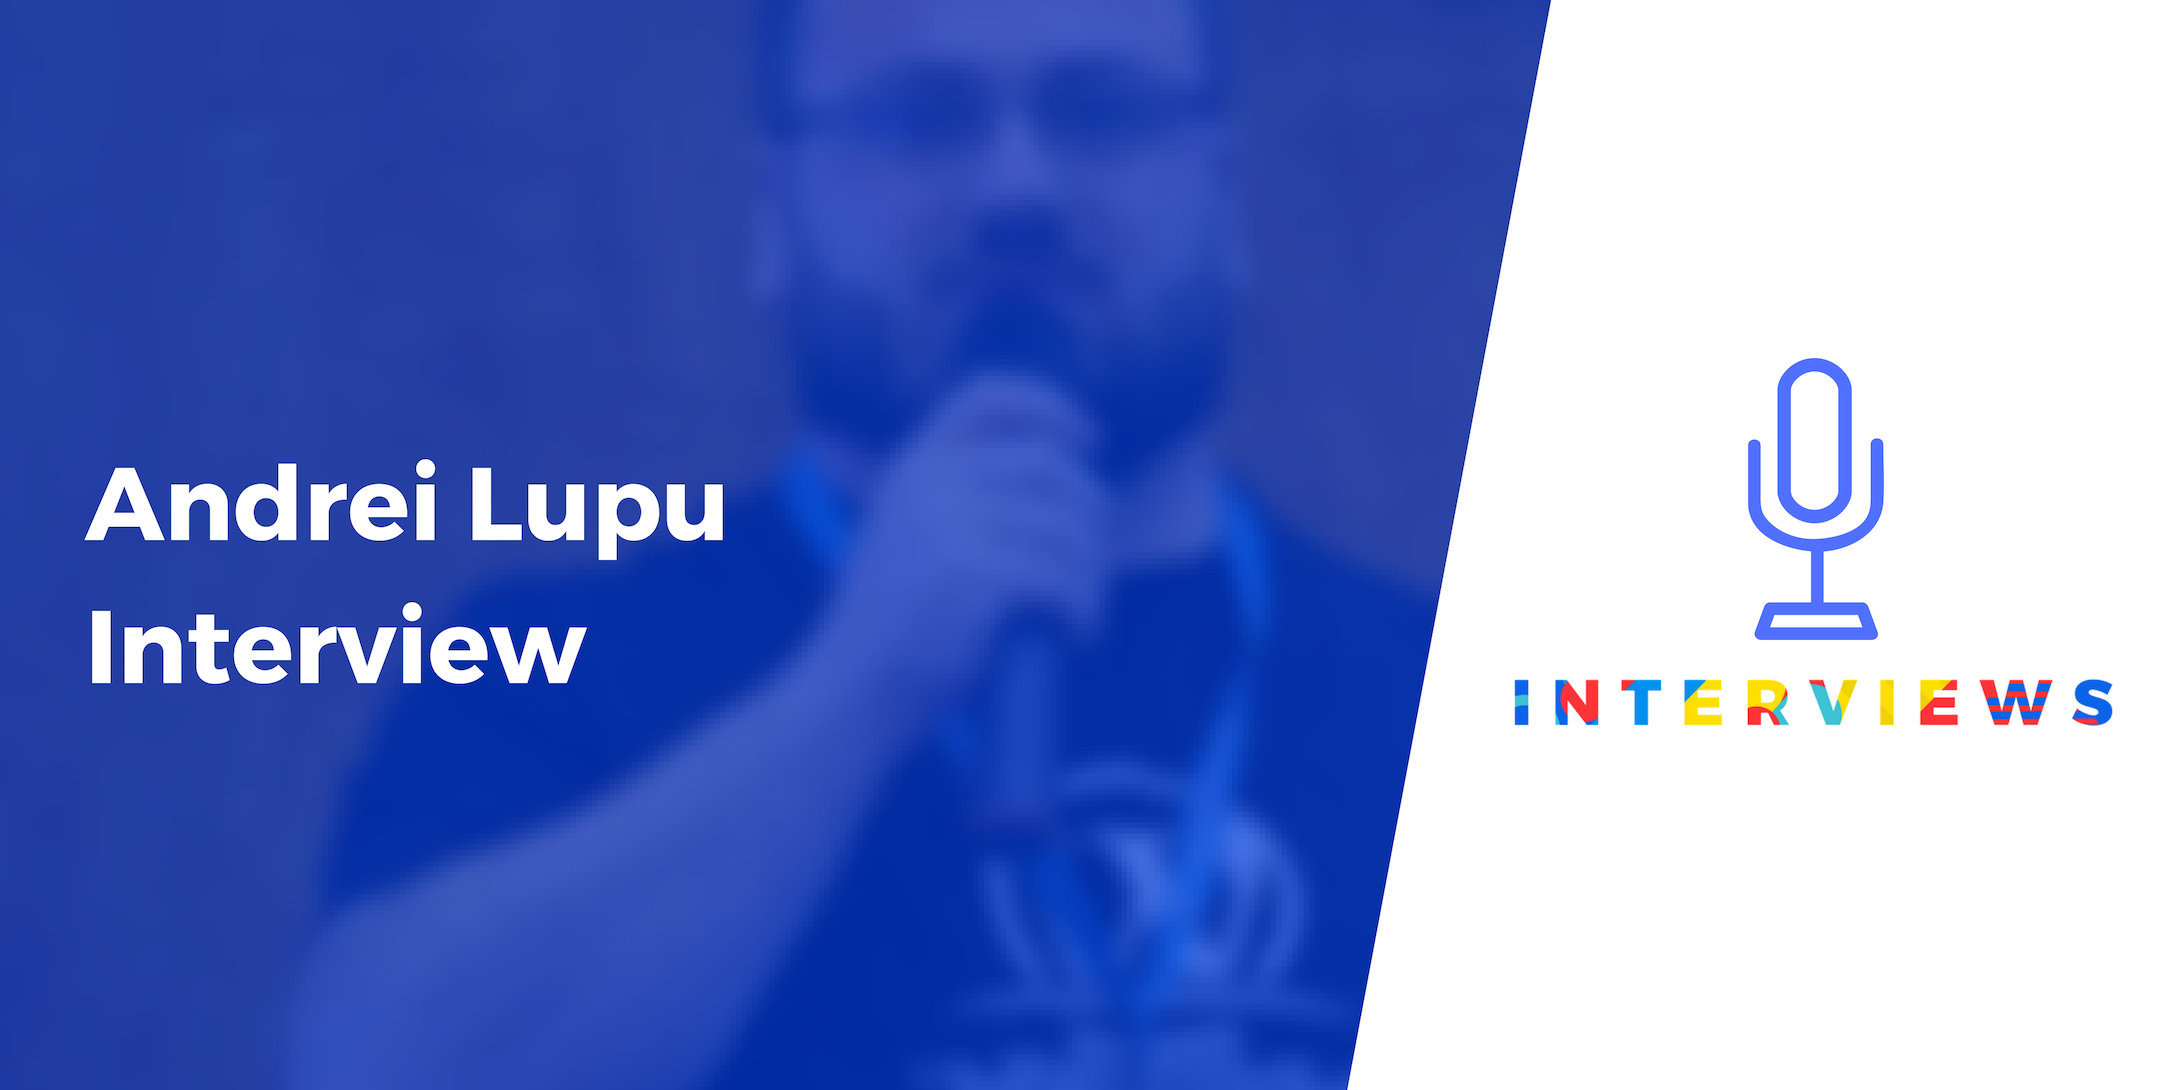 Andrei Lupu Interview